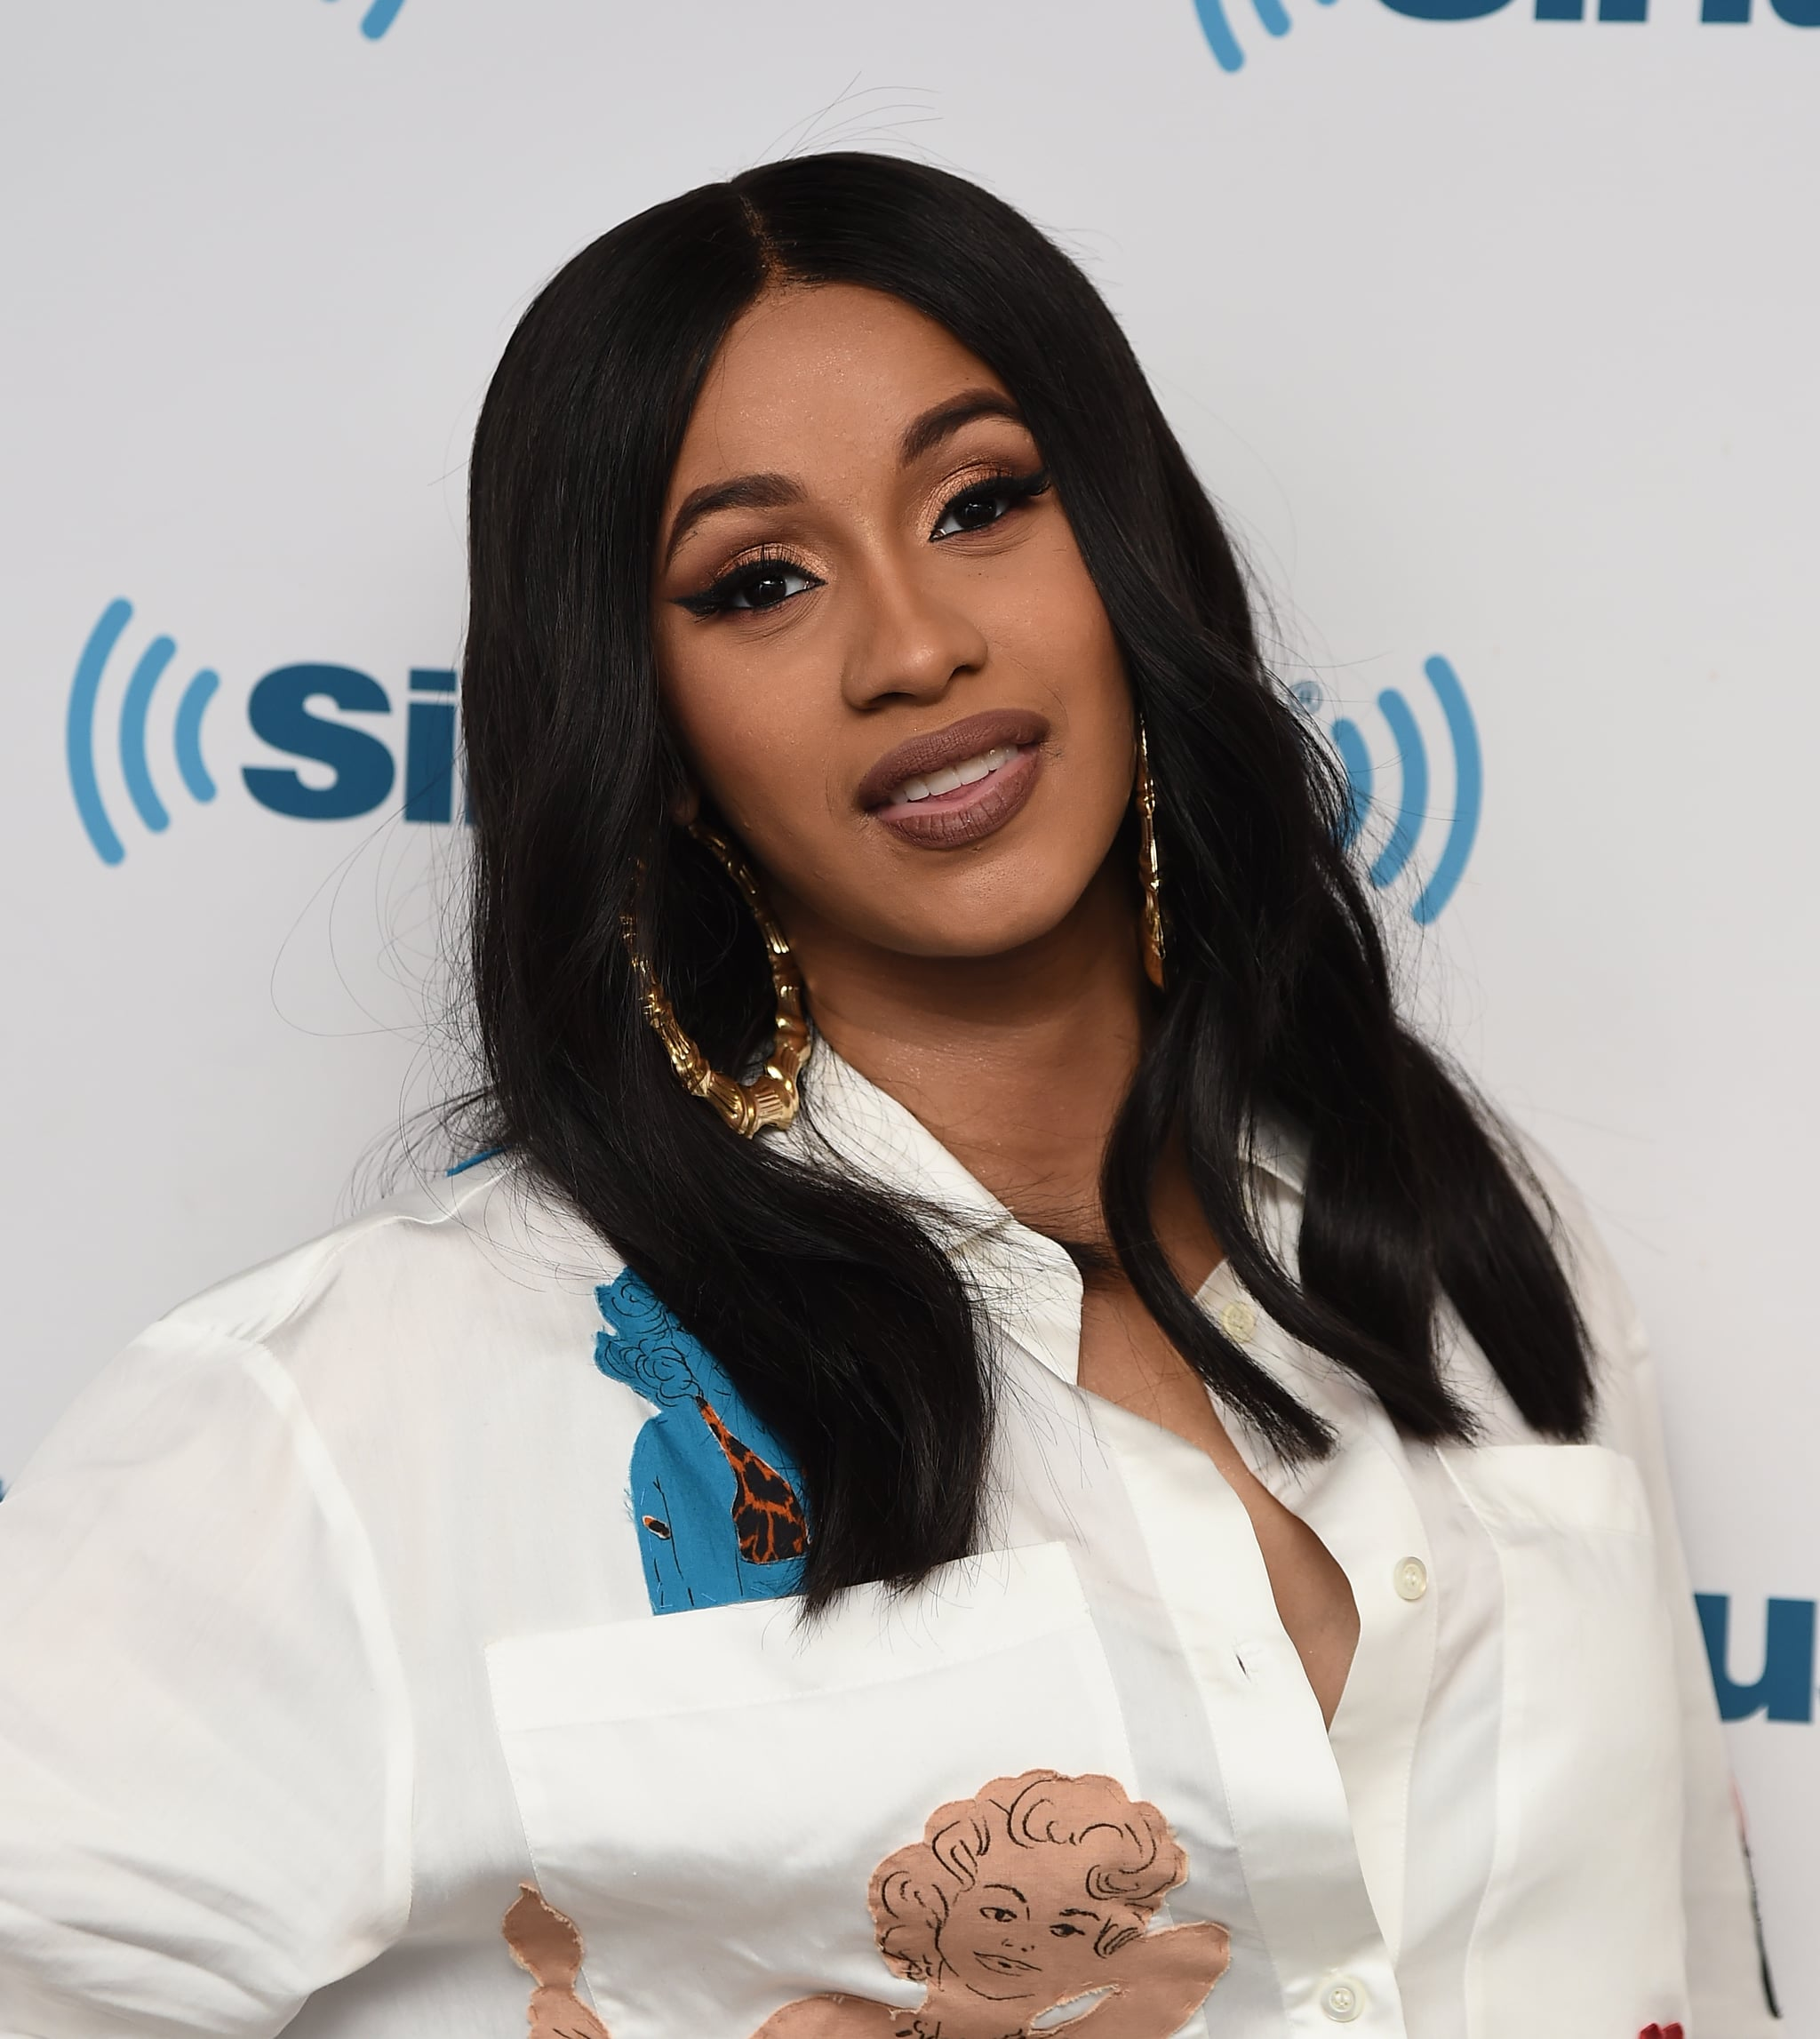 NEW YORK, NY - MAY 09:  Performing artist Cardi B visits the SiriusXM Studios on May 9, 2018 in New York City.  (Photo by Ilya S. Savenok/Getty Images)